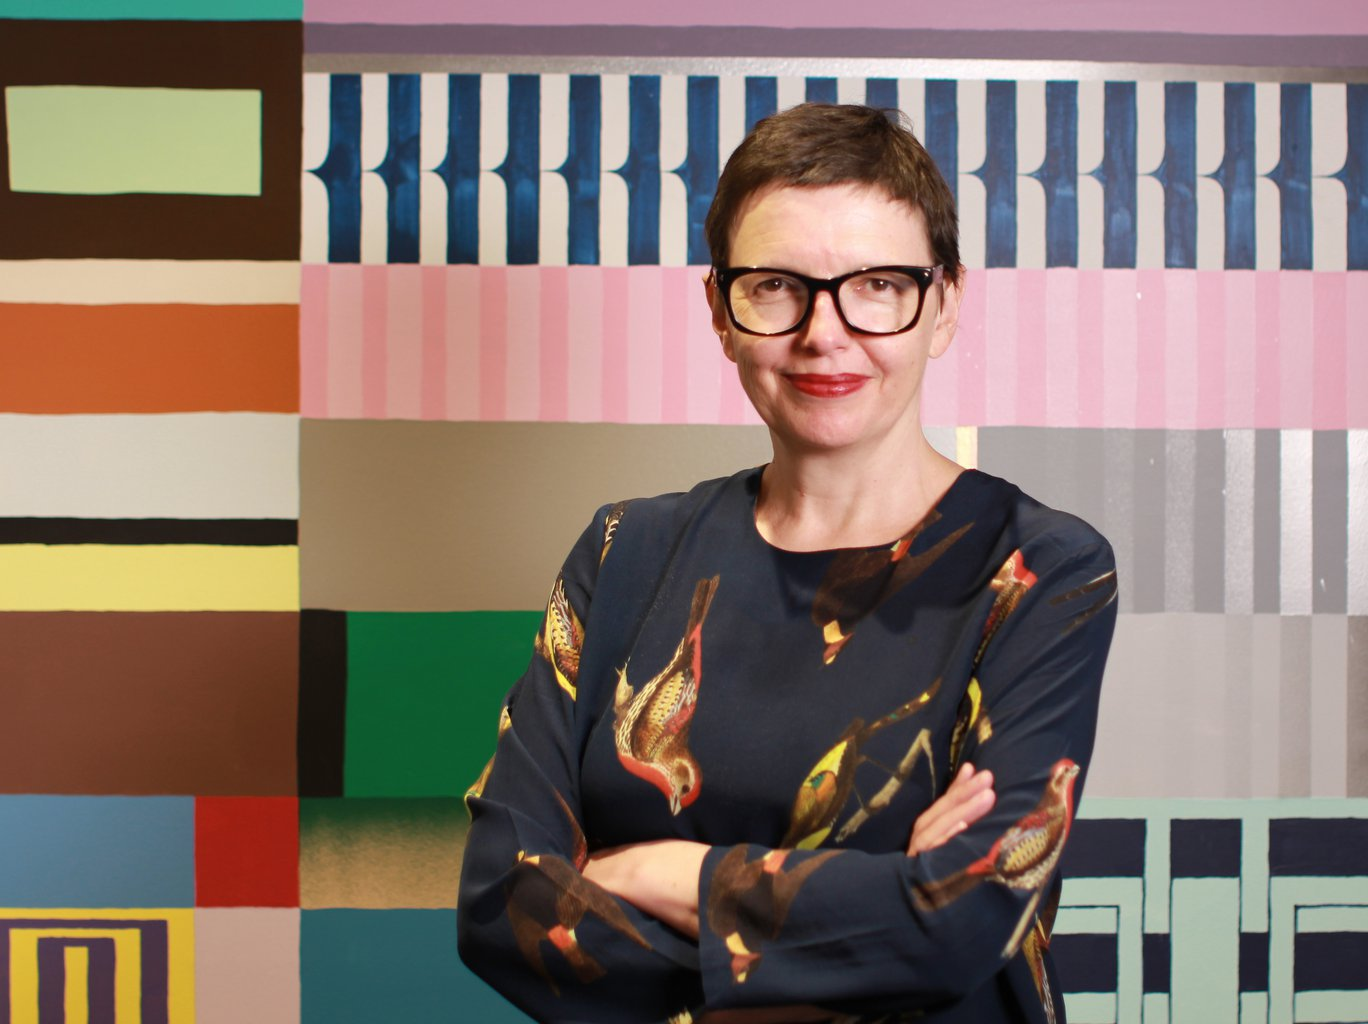 Katrina standing in front of a patterned colourful wall